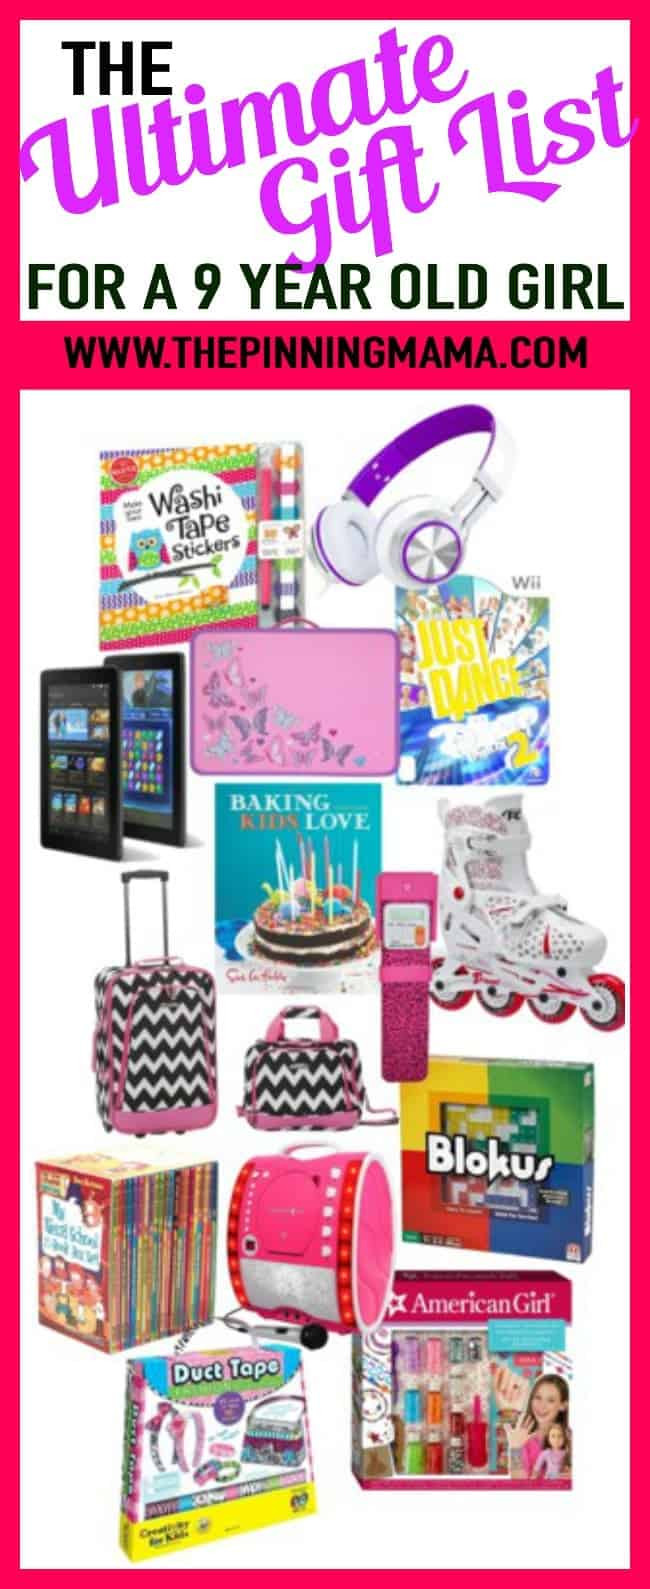 Best ideas about 9 Year Old Birthday Girl Gift Ideas . Save or Pin The Ultimate Gift List for a 9 Year Old Girl • The Pinning Now.